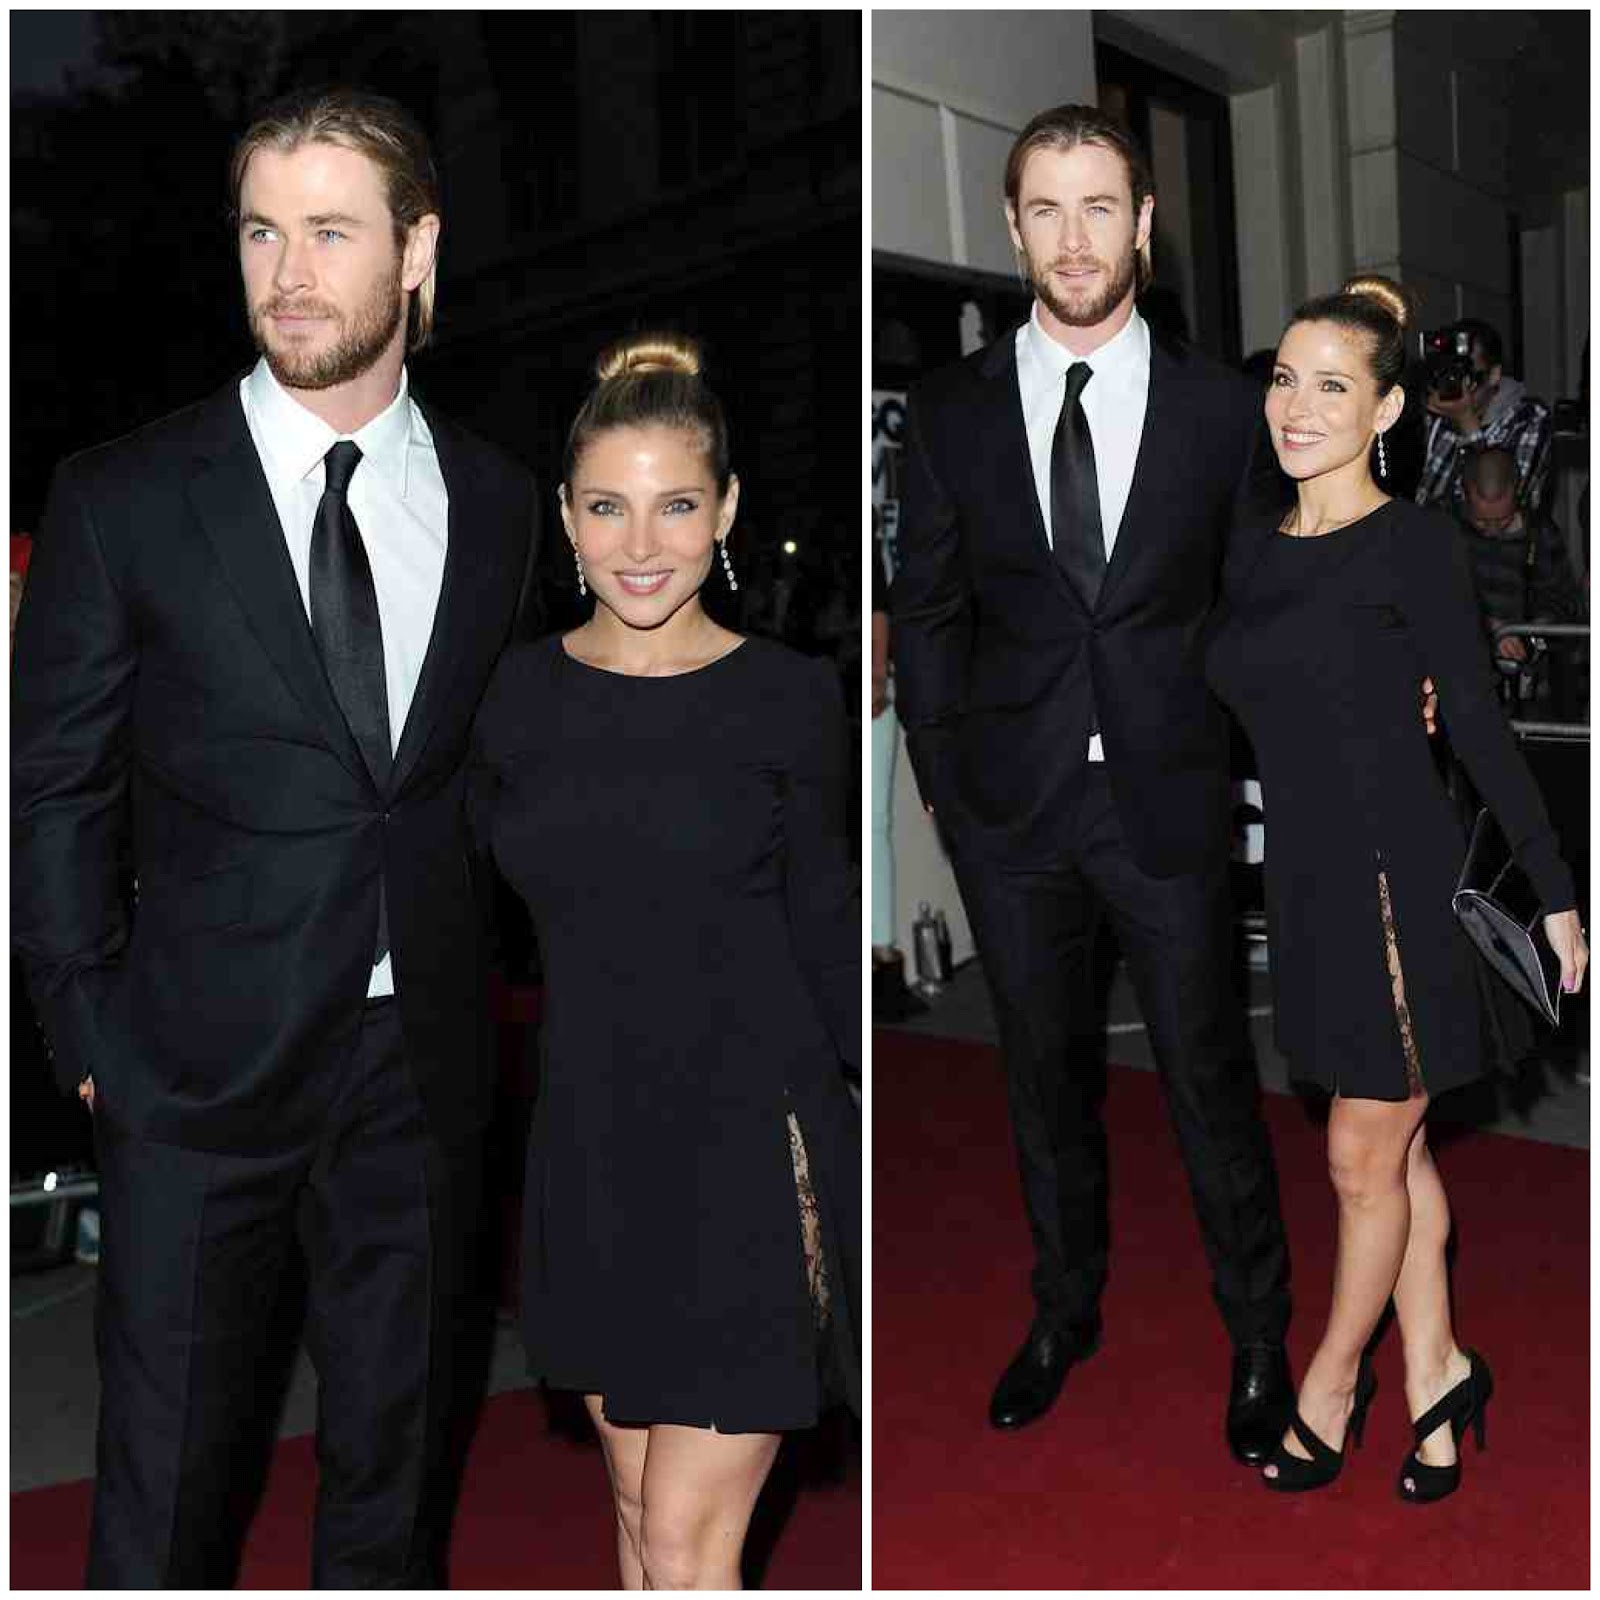 00O00 London Menswear Blog Chris Hemsworth and wife Elsa Pataky GQ Men Of The Year Awards 2012 Dunhill